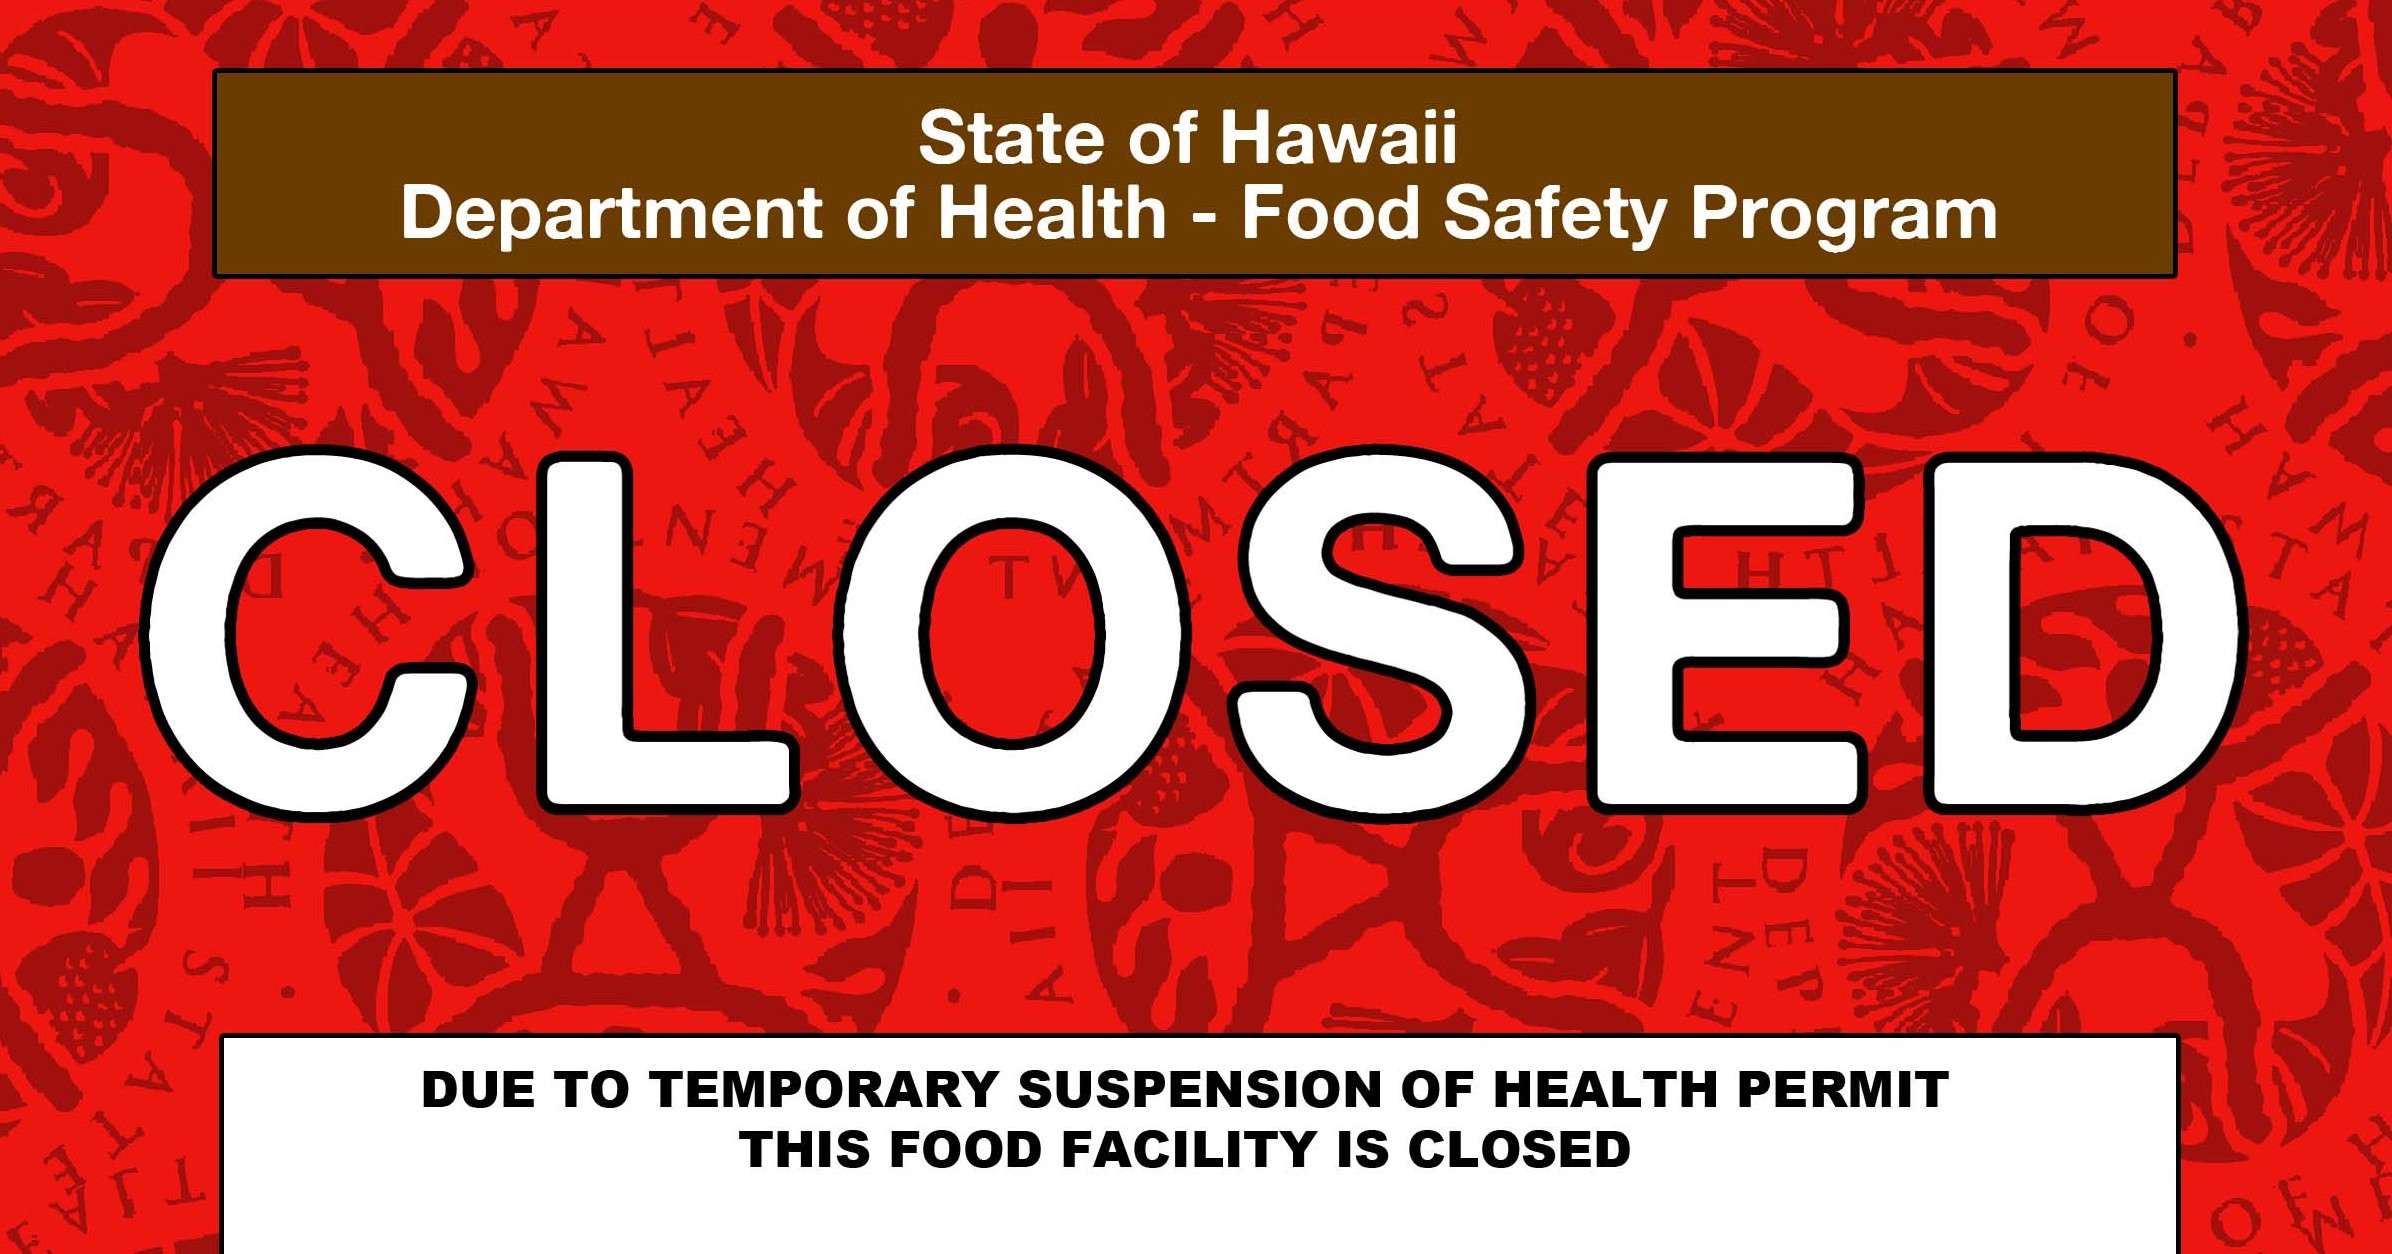 Health Department Says Red Cards at Maui Restaurants Part of Routine Inspections